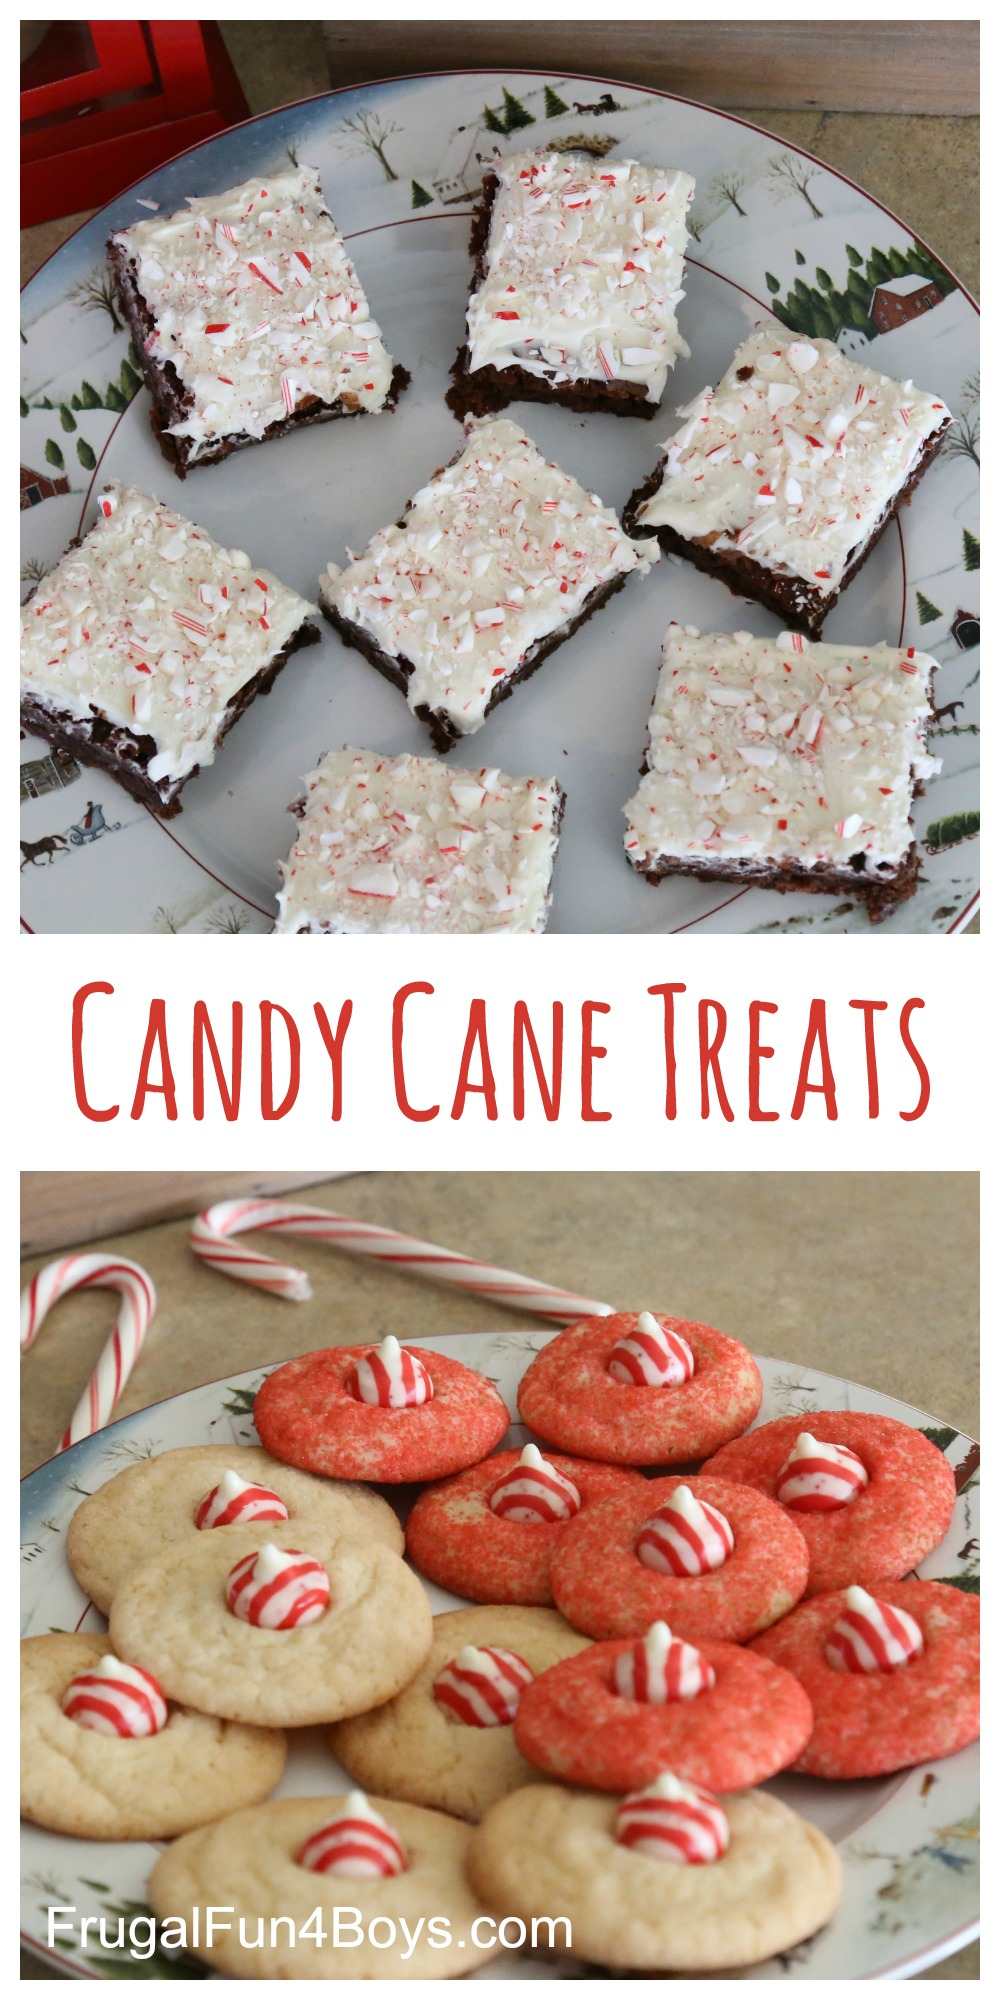 Candy Cane Holiday Treats for Kids to Make and Give